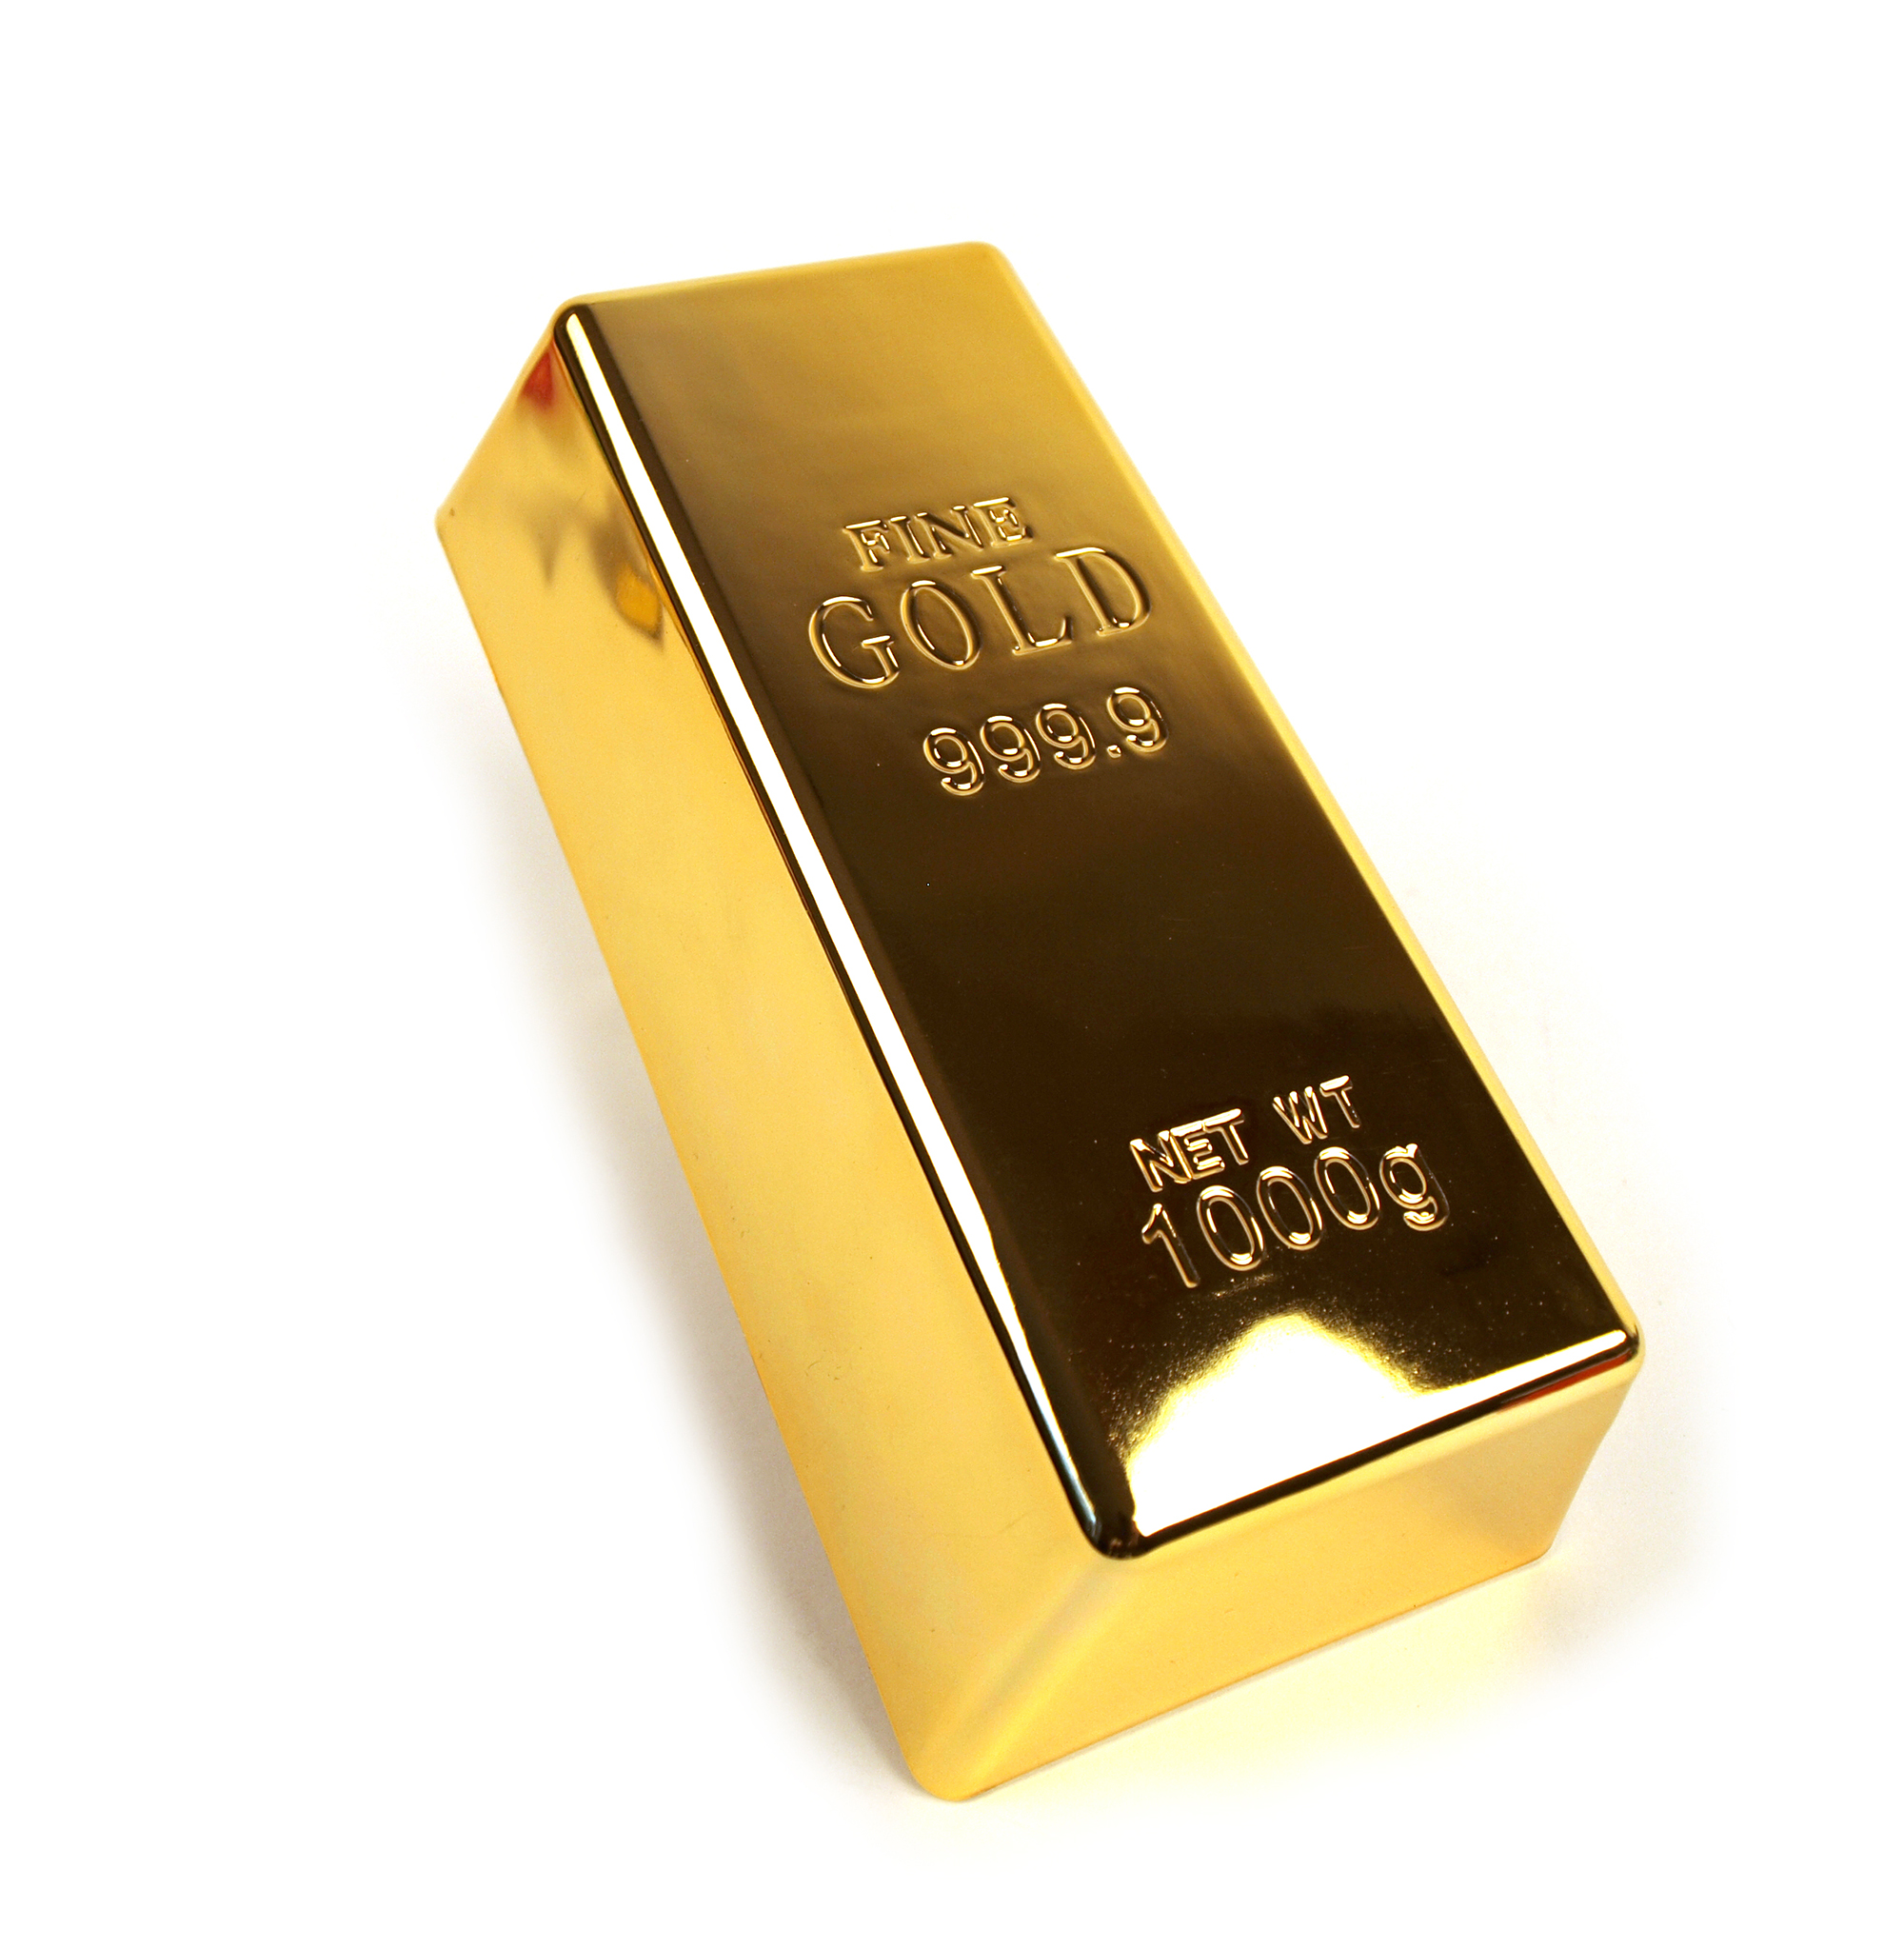 Gold Bar Paperweight Or Doorstop 1kg Bullion Bar Pink